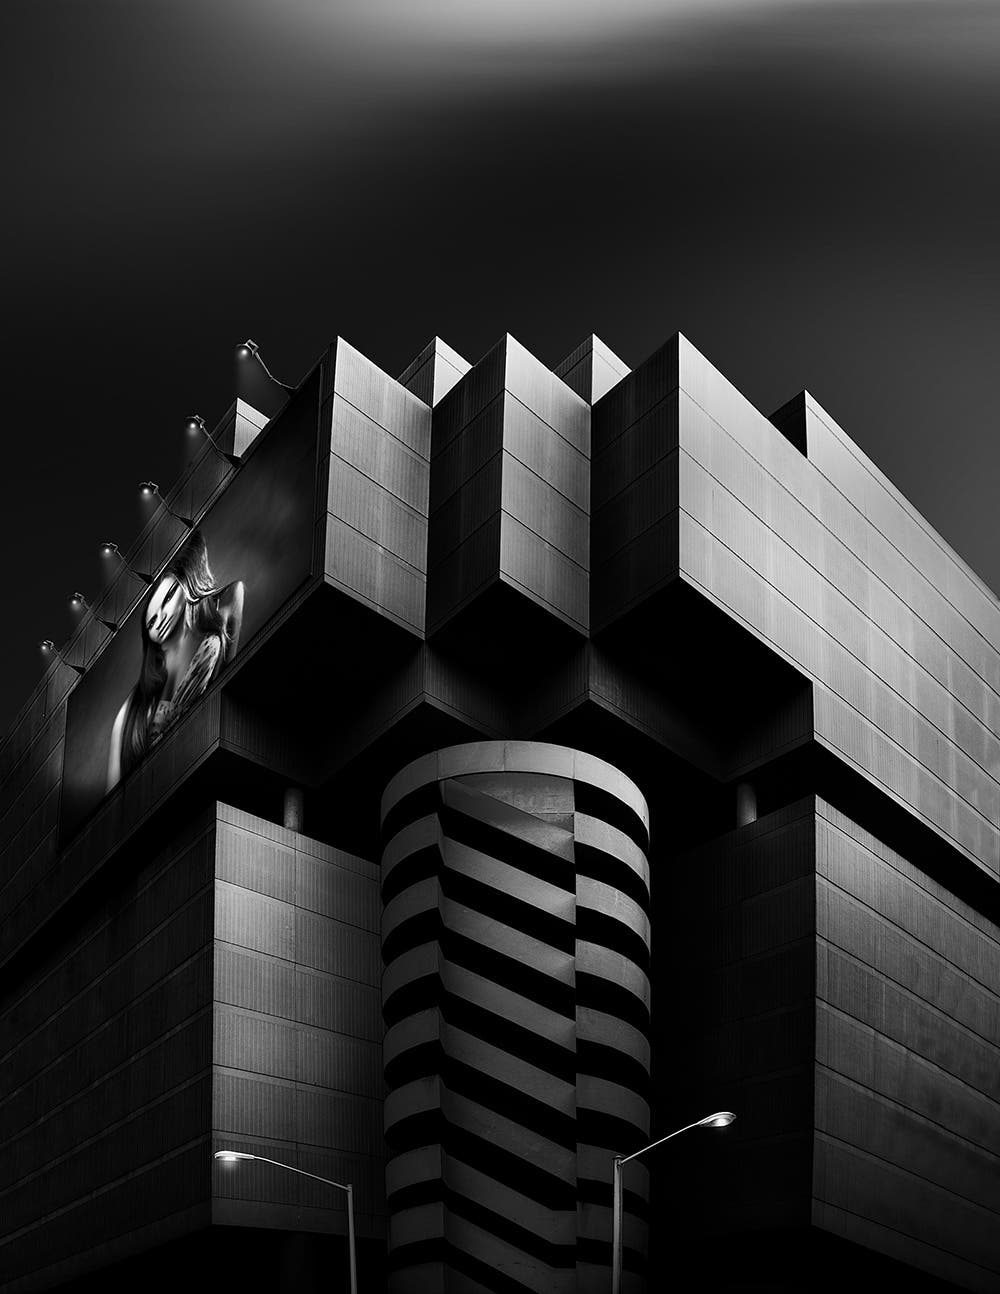 Photographer Dennis Ramos Explains How He Creates Surreal Black and White Architectural Photos